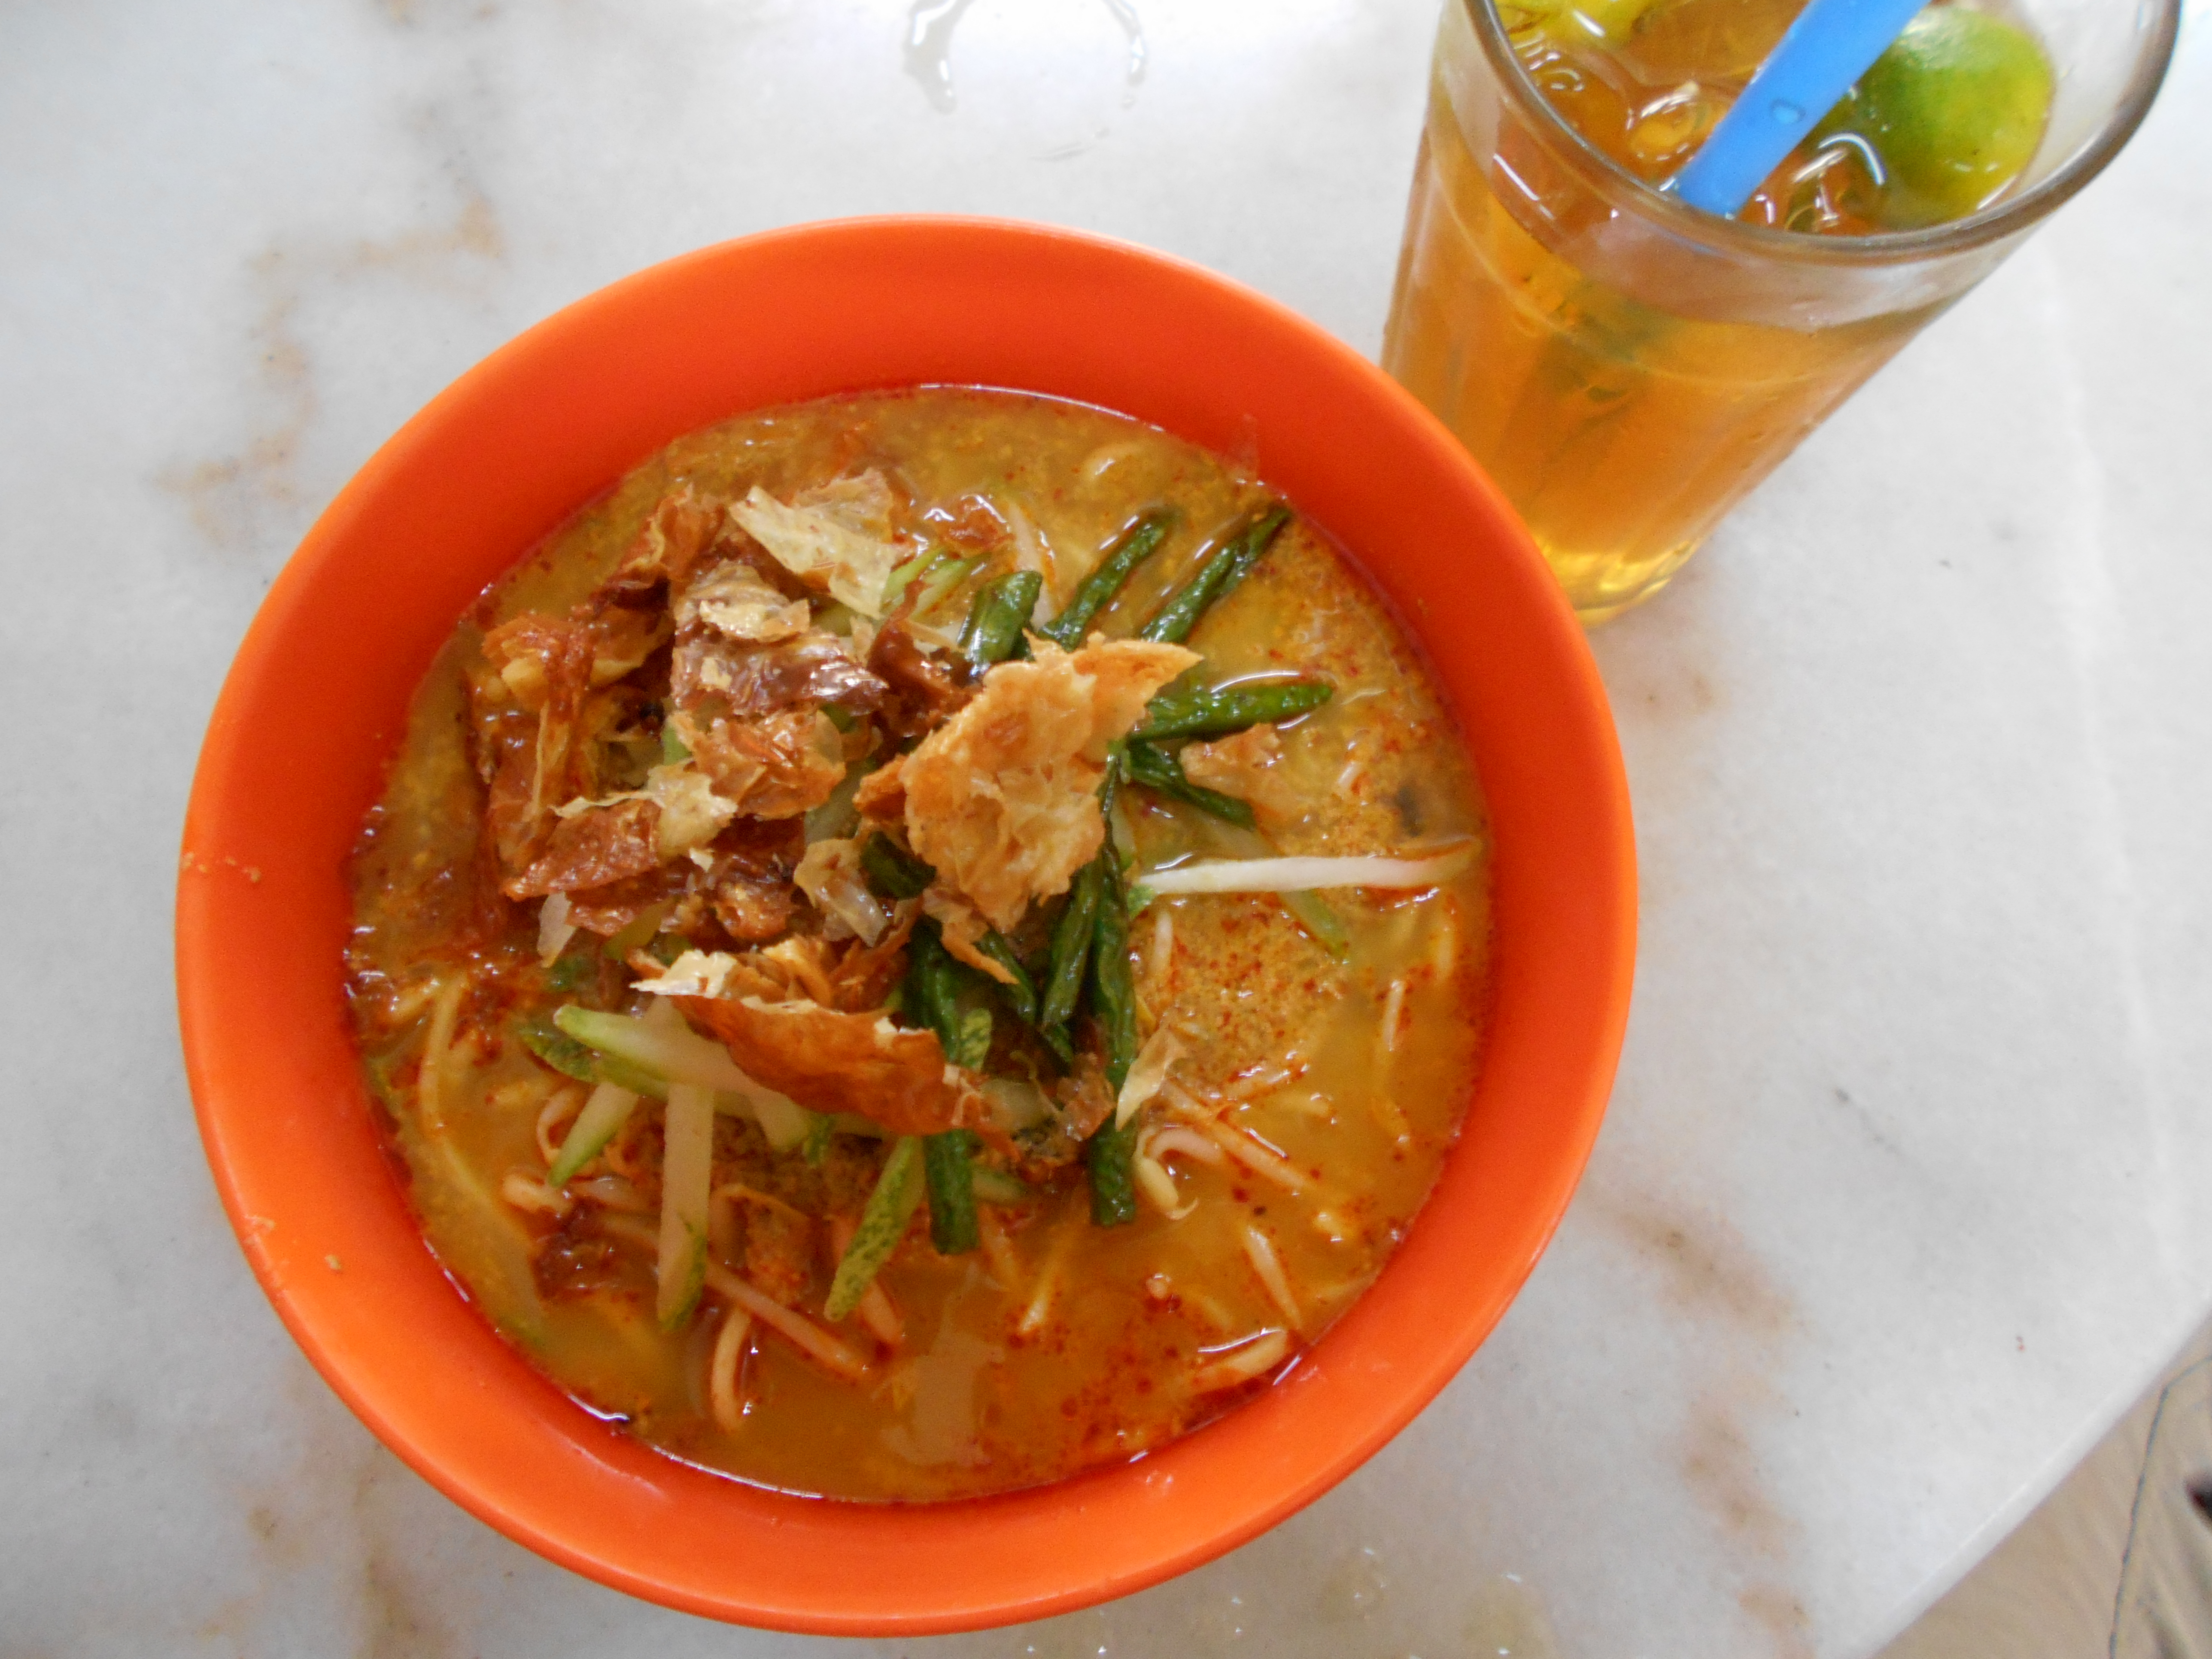 Malay Vegetarian food. Food for a Vegetarian In Southeast Asia